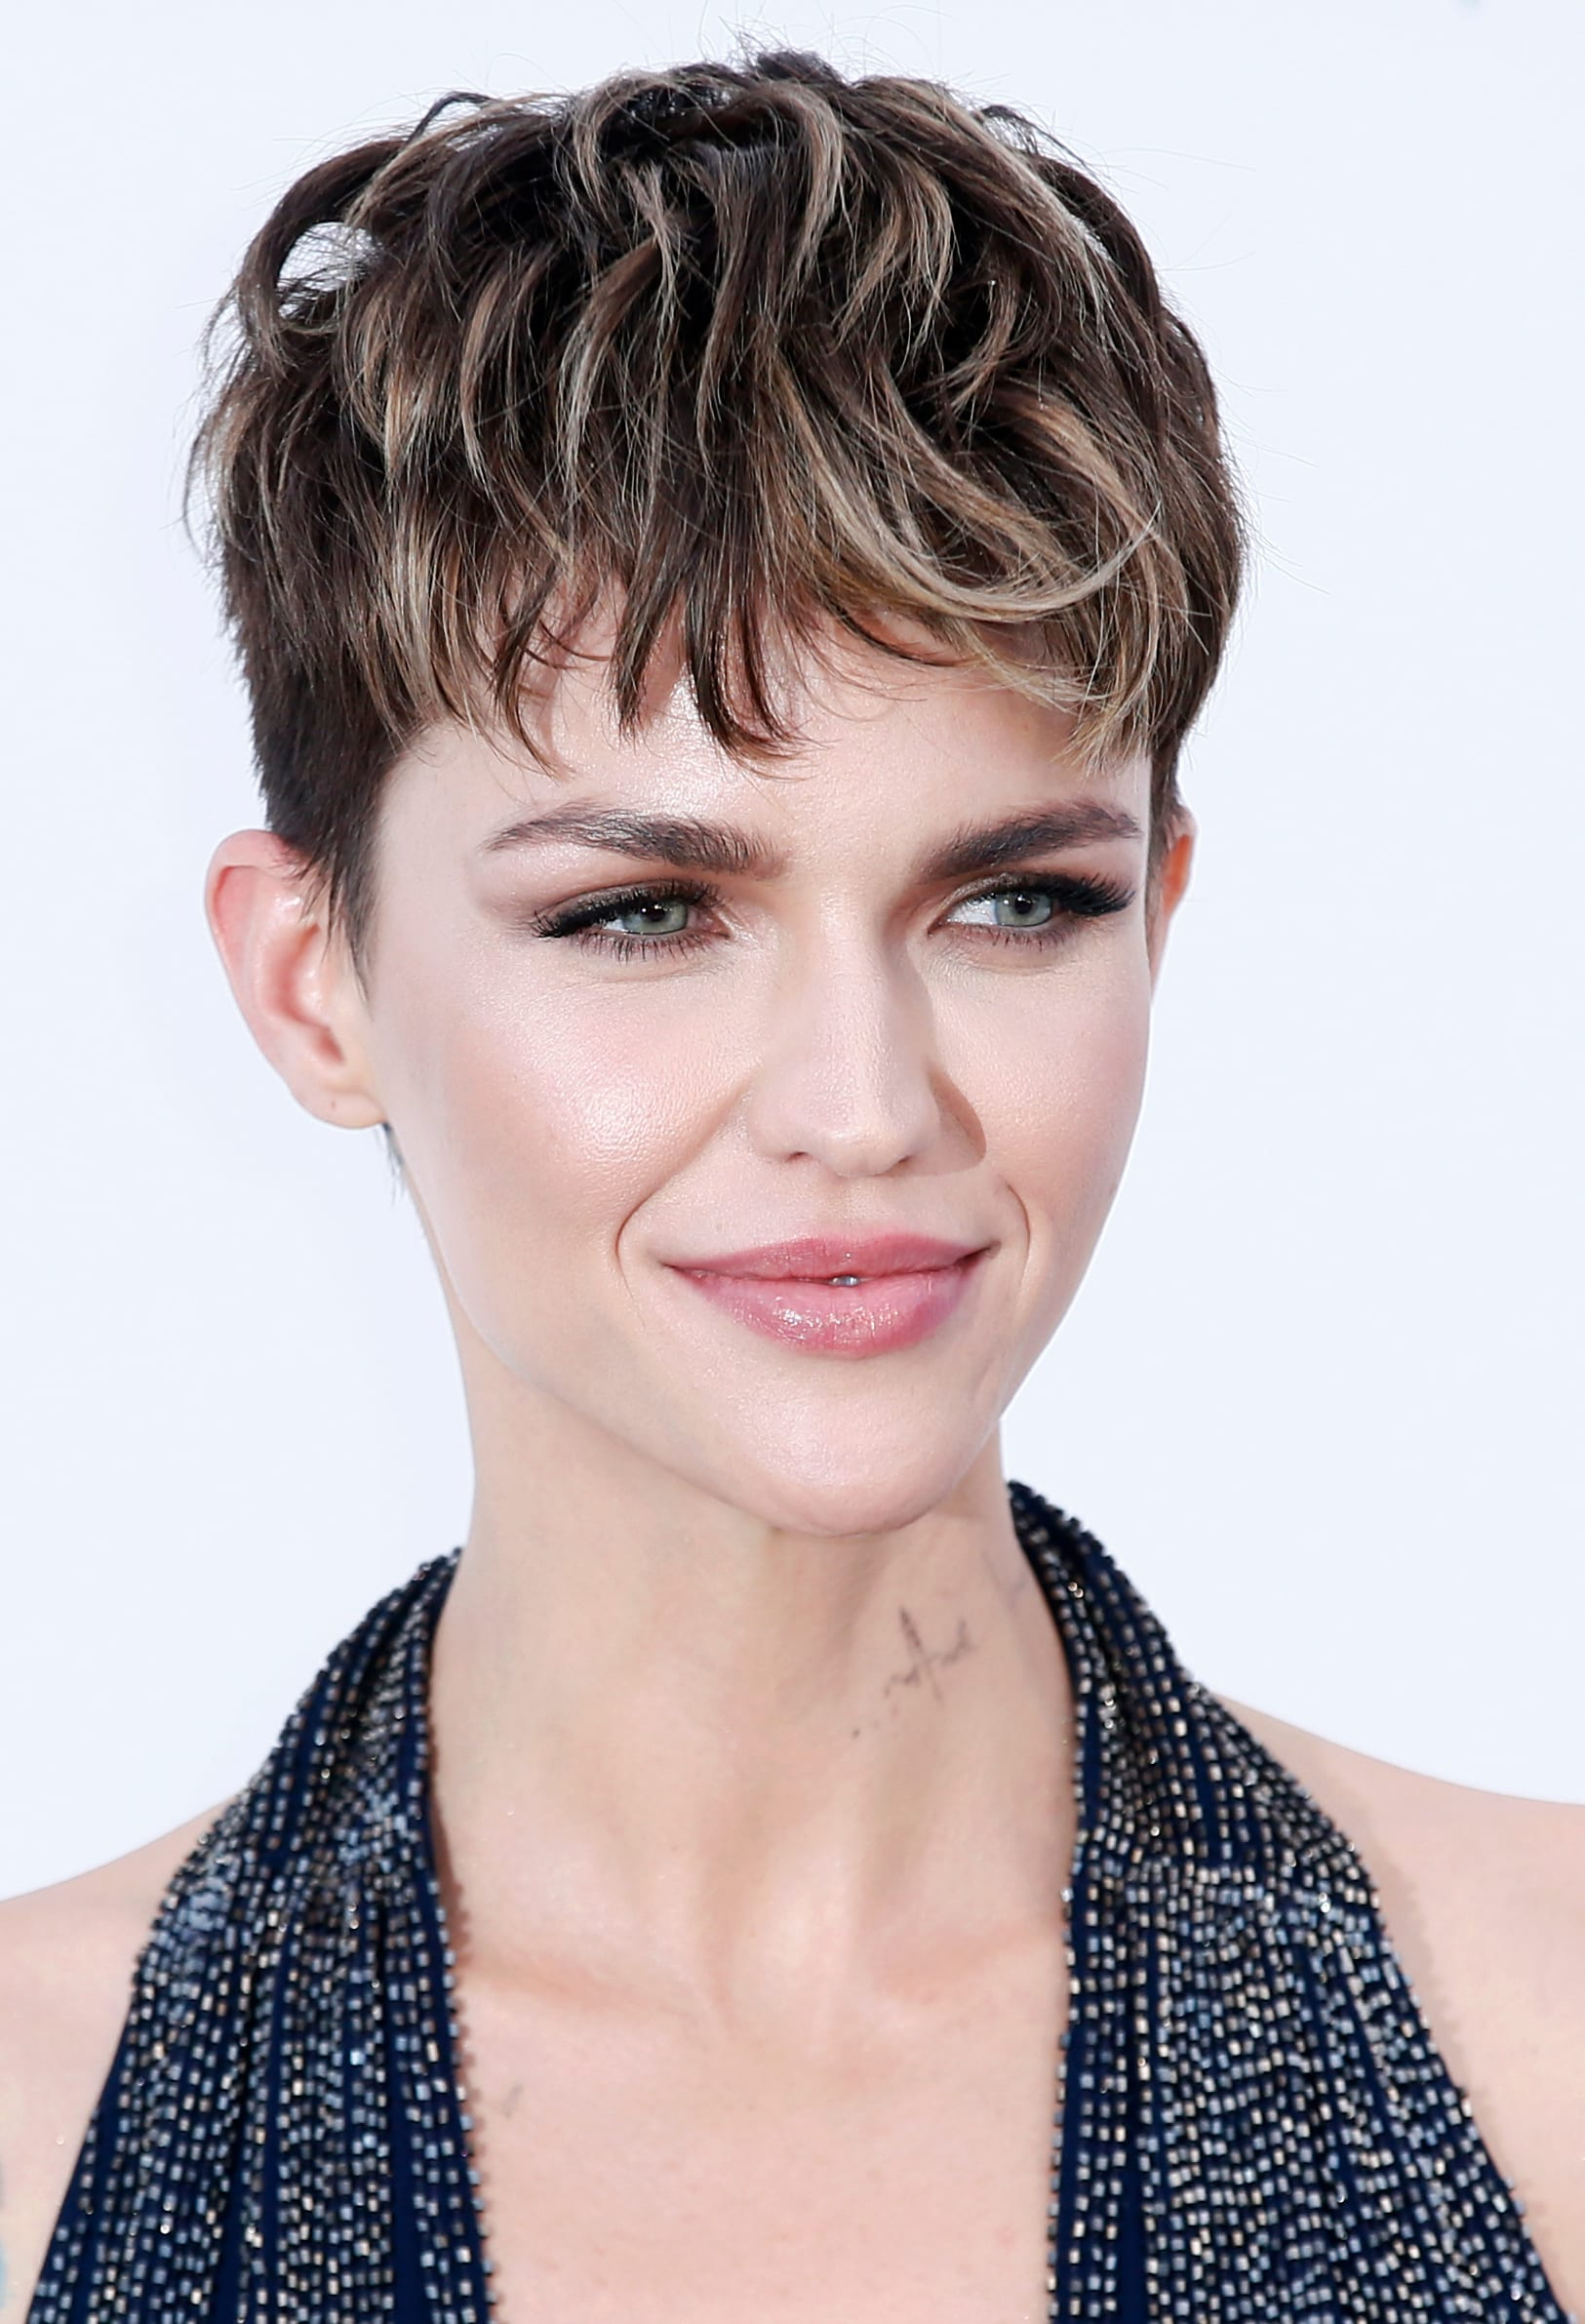 Ruby Rose's Undercut Crop with Highlights